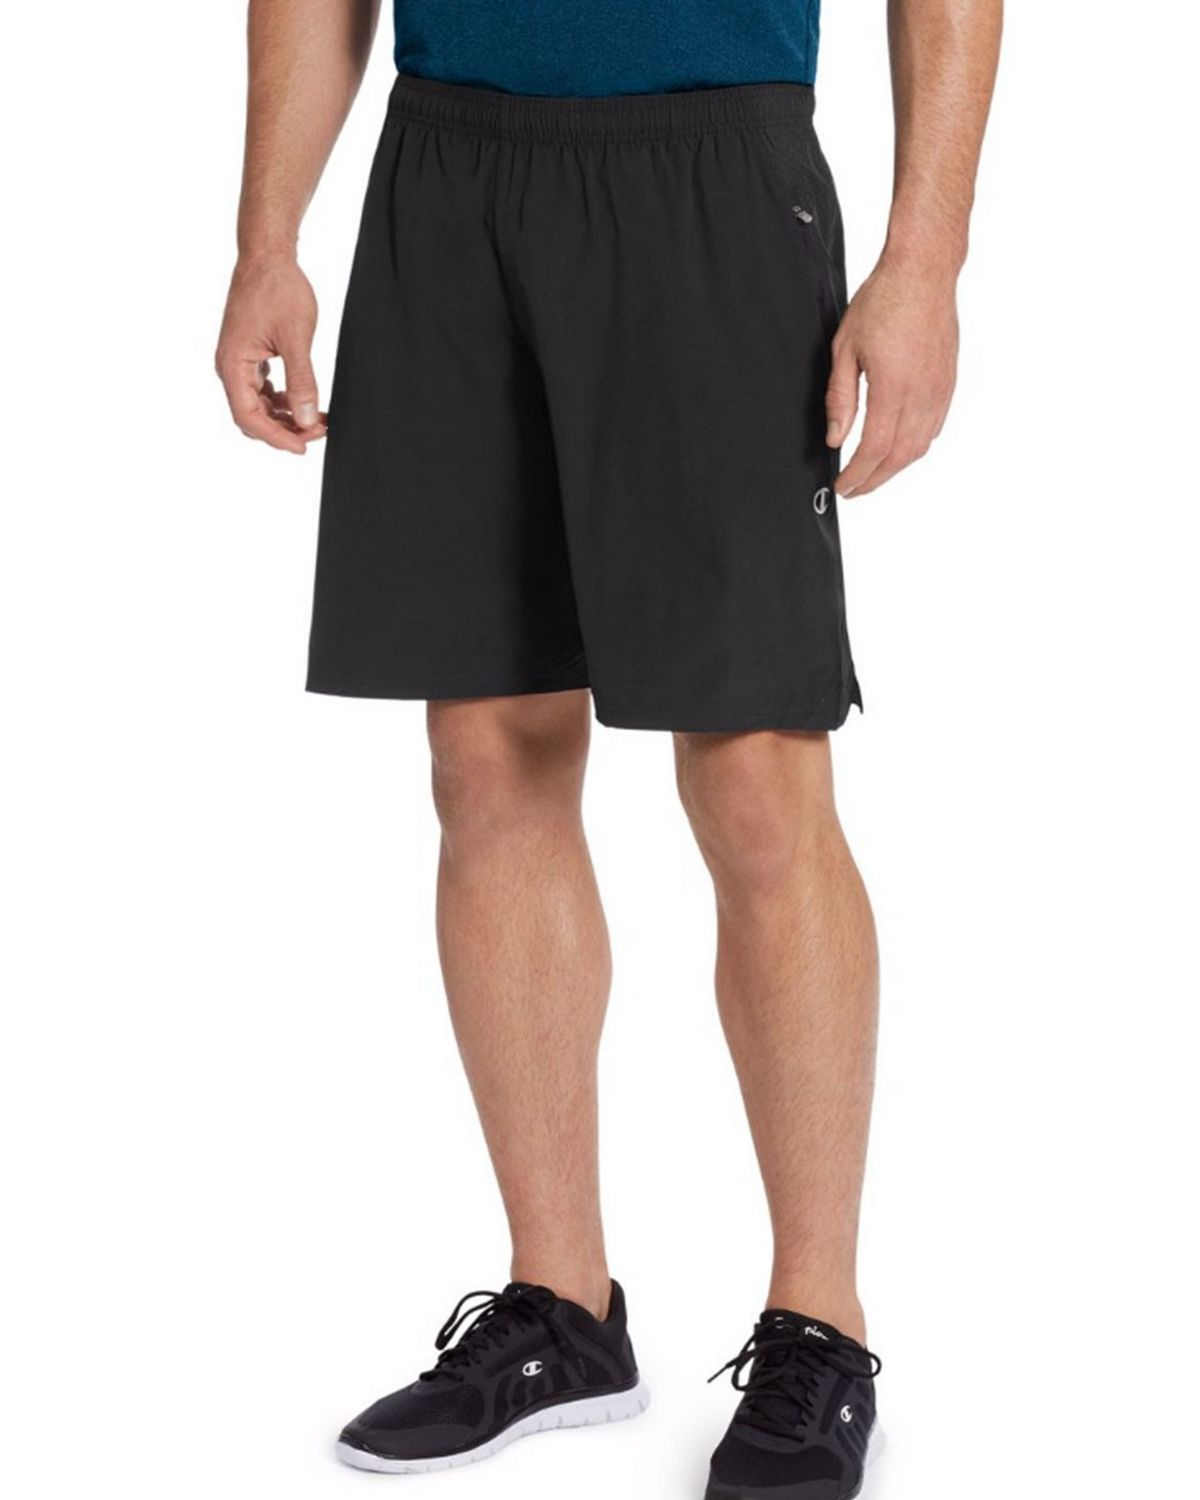 Champion 80046 365 Shorts - Black - XL 80046